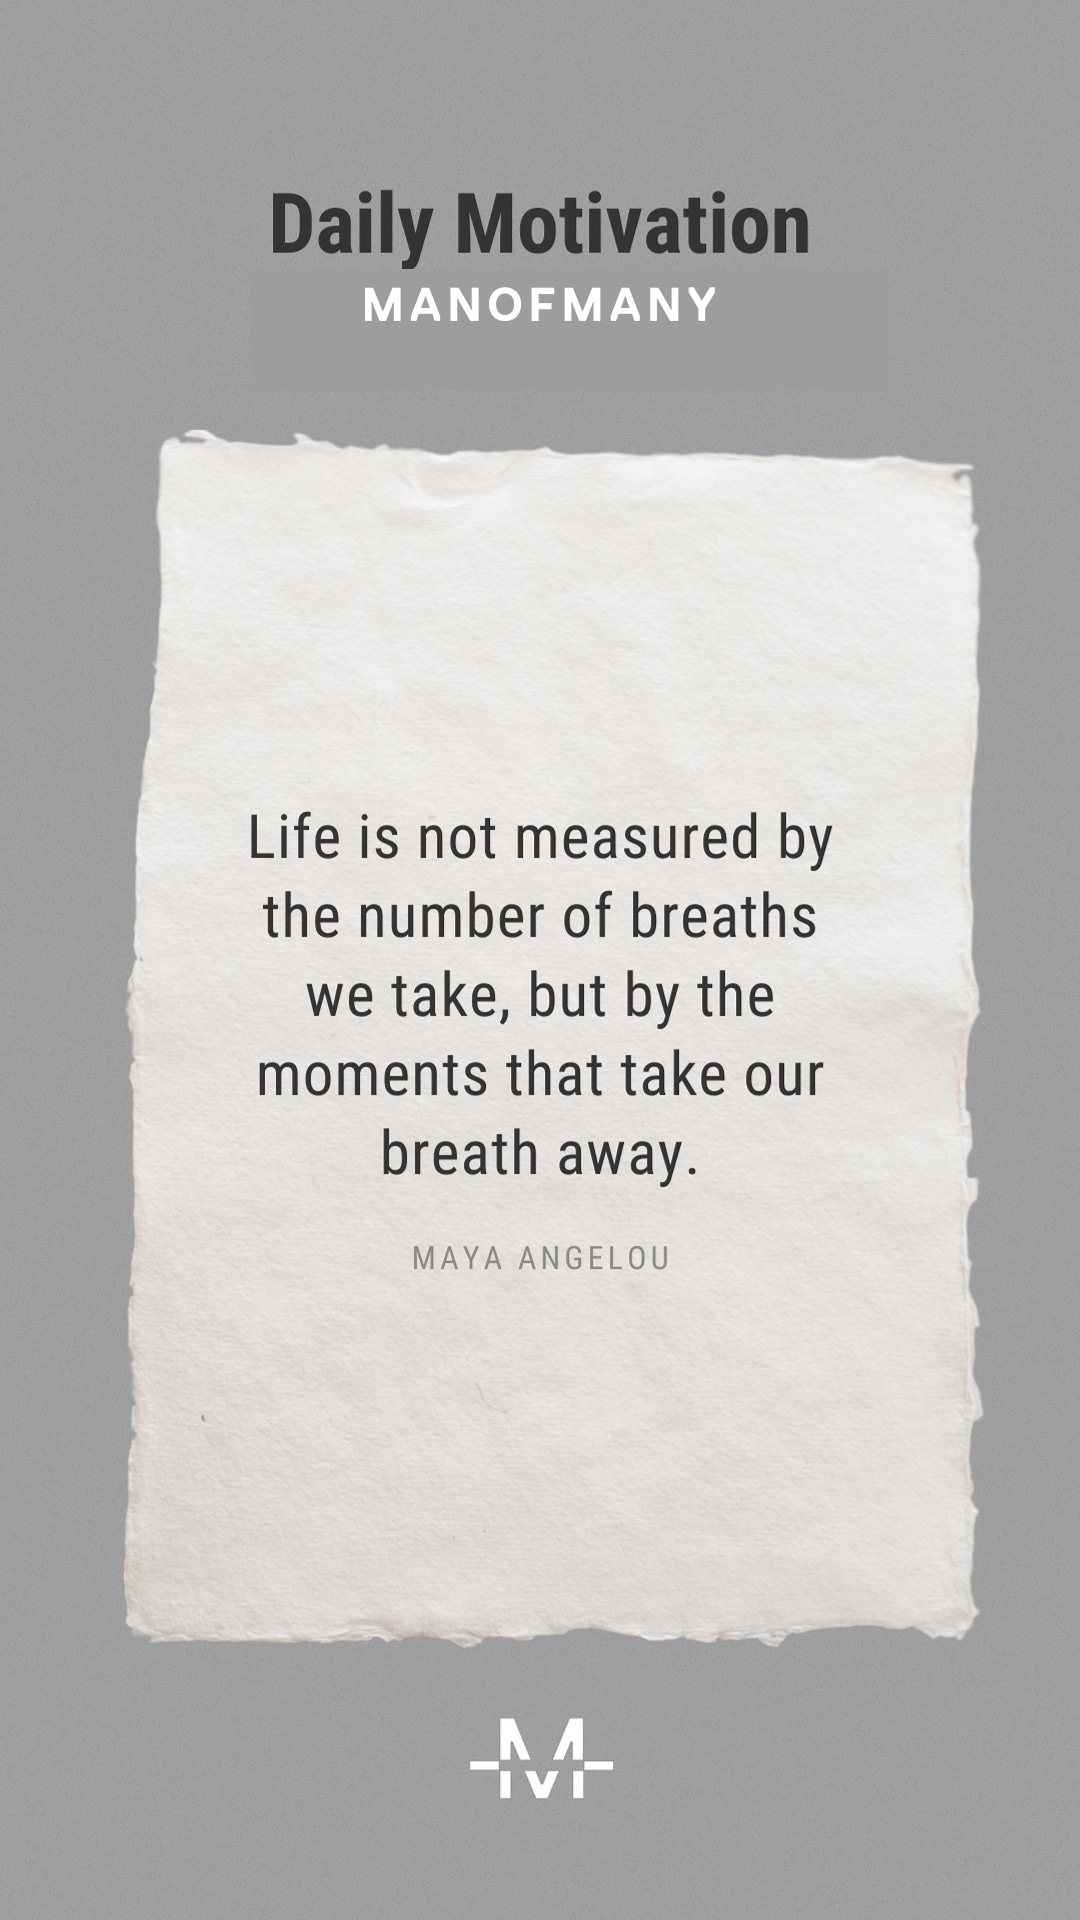 Life is not measured by the number of breaths we take, but by the moments that take our breath away. –Maya Angelou quote